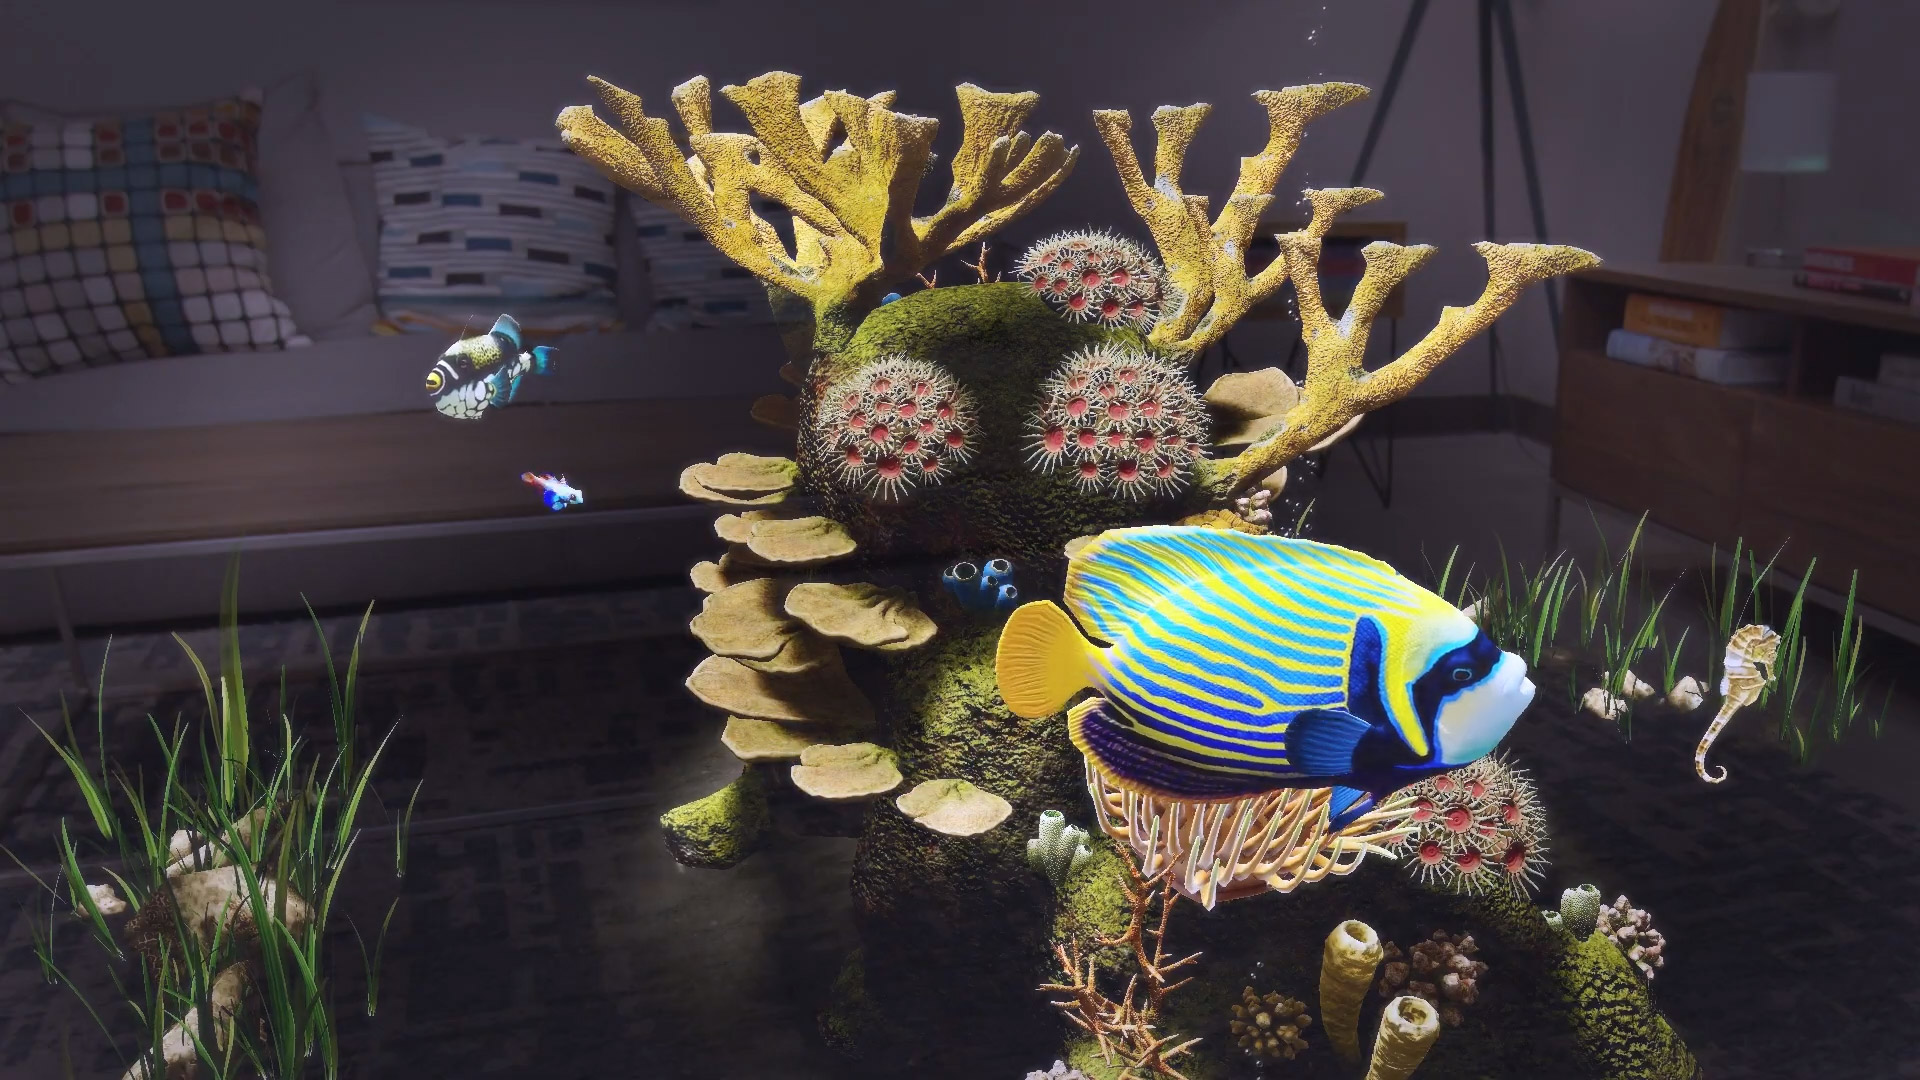 New Magic Leap Studios 'Undersea' Experience Turns Your Living Room into a Coral Reef